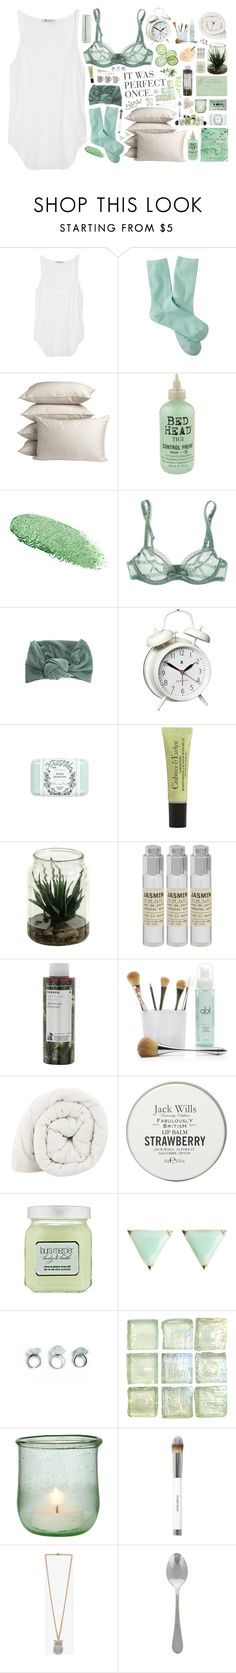 """""""Untitled #165"""" by jenniezara ❤ liked on Polyvore featuring T By Alexander Wang, Merona, PBteen, Bed Head by TIGI, Lancôme, Huit, SELECTED, Newgate, Mistral and Crabtree & Evelyn"""